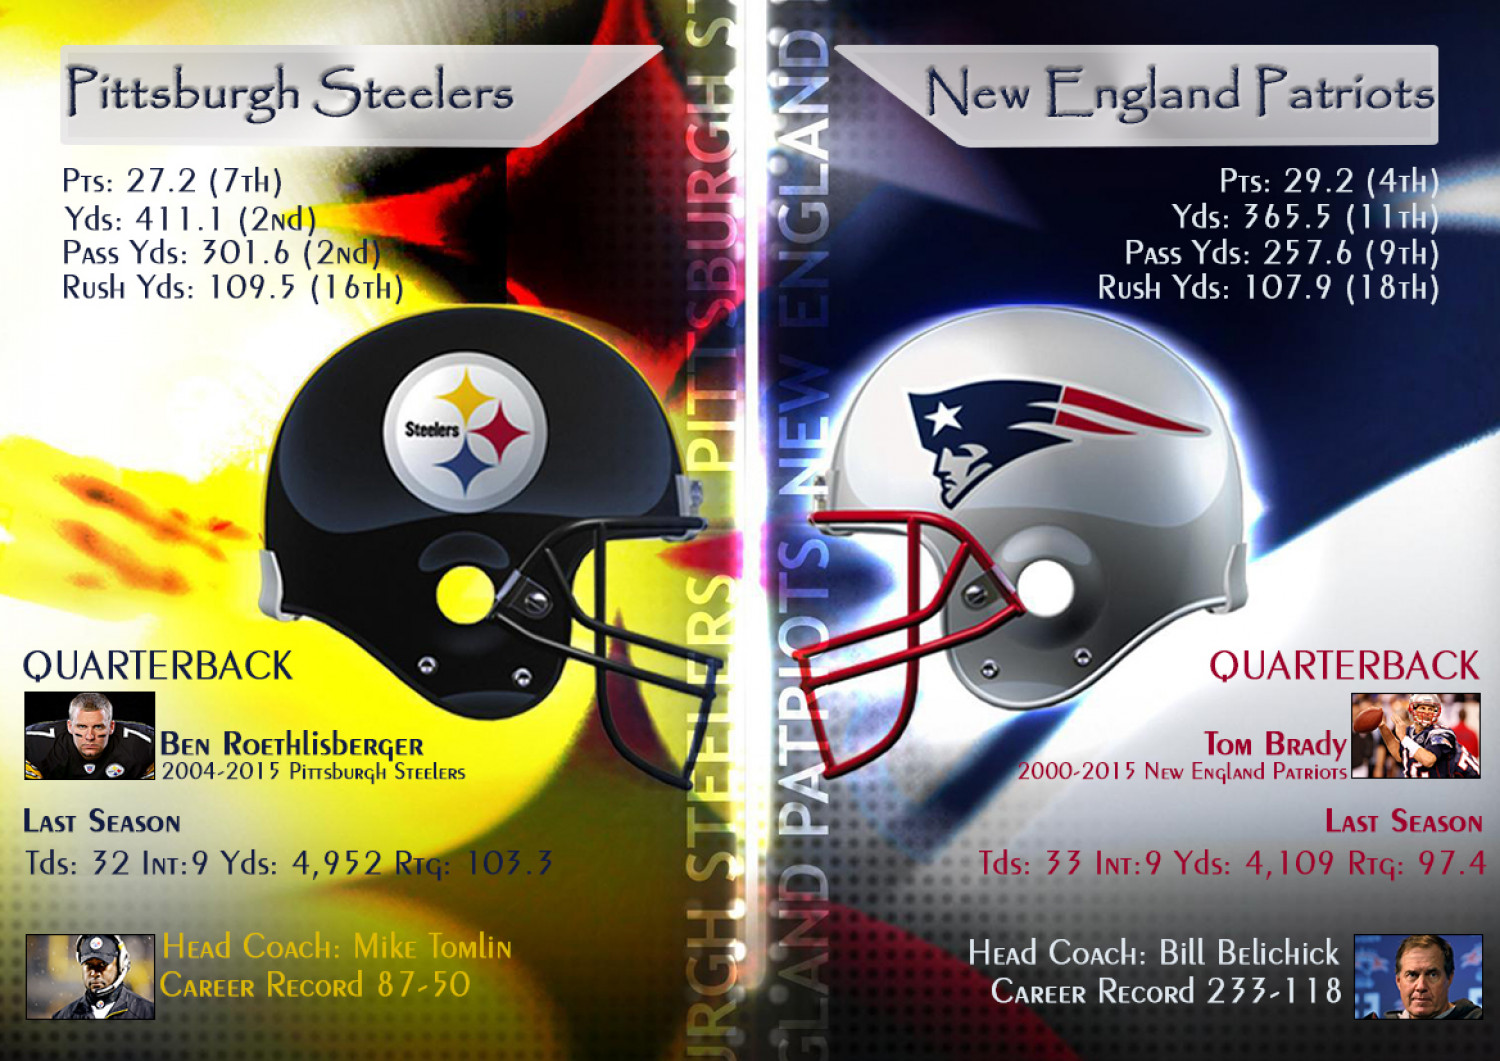 Pittsburgh Steelers VS New England Patriots Infographic